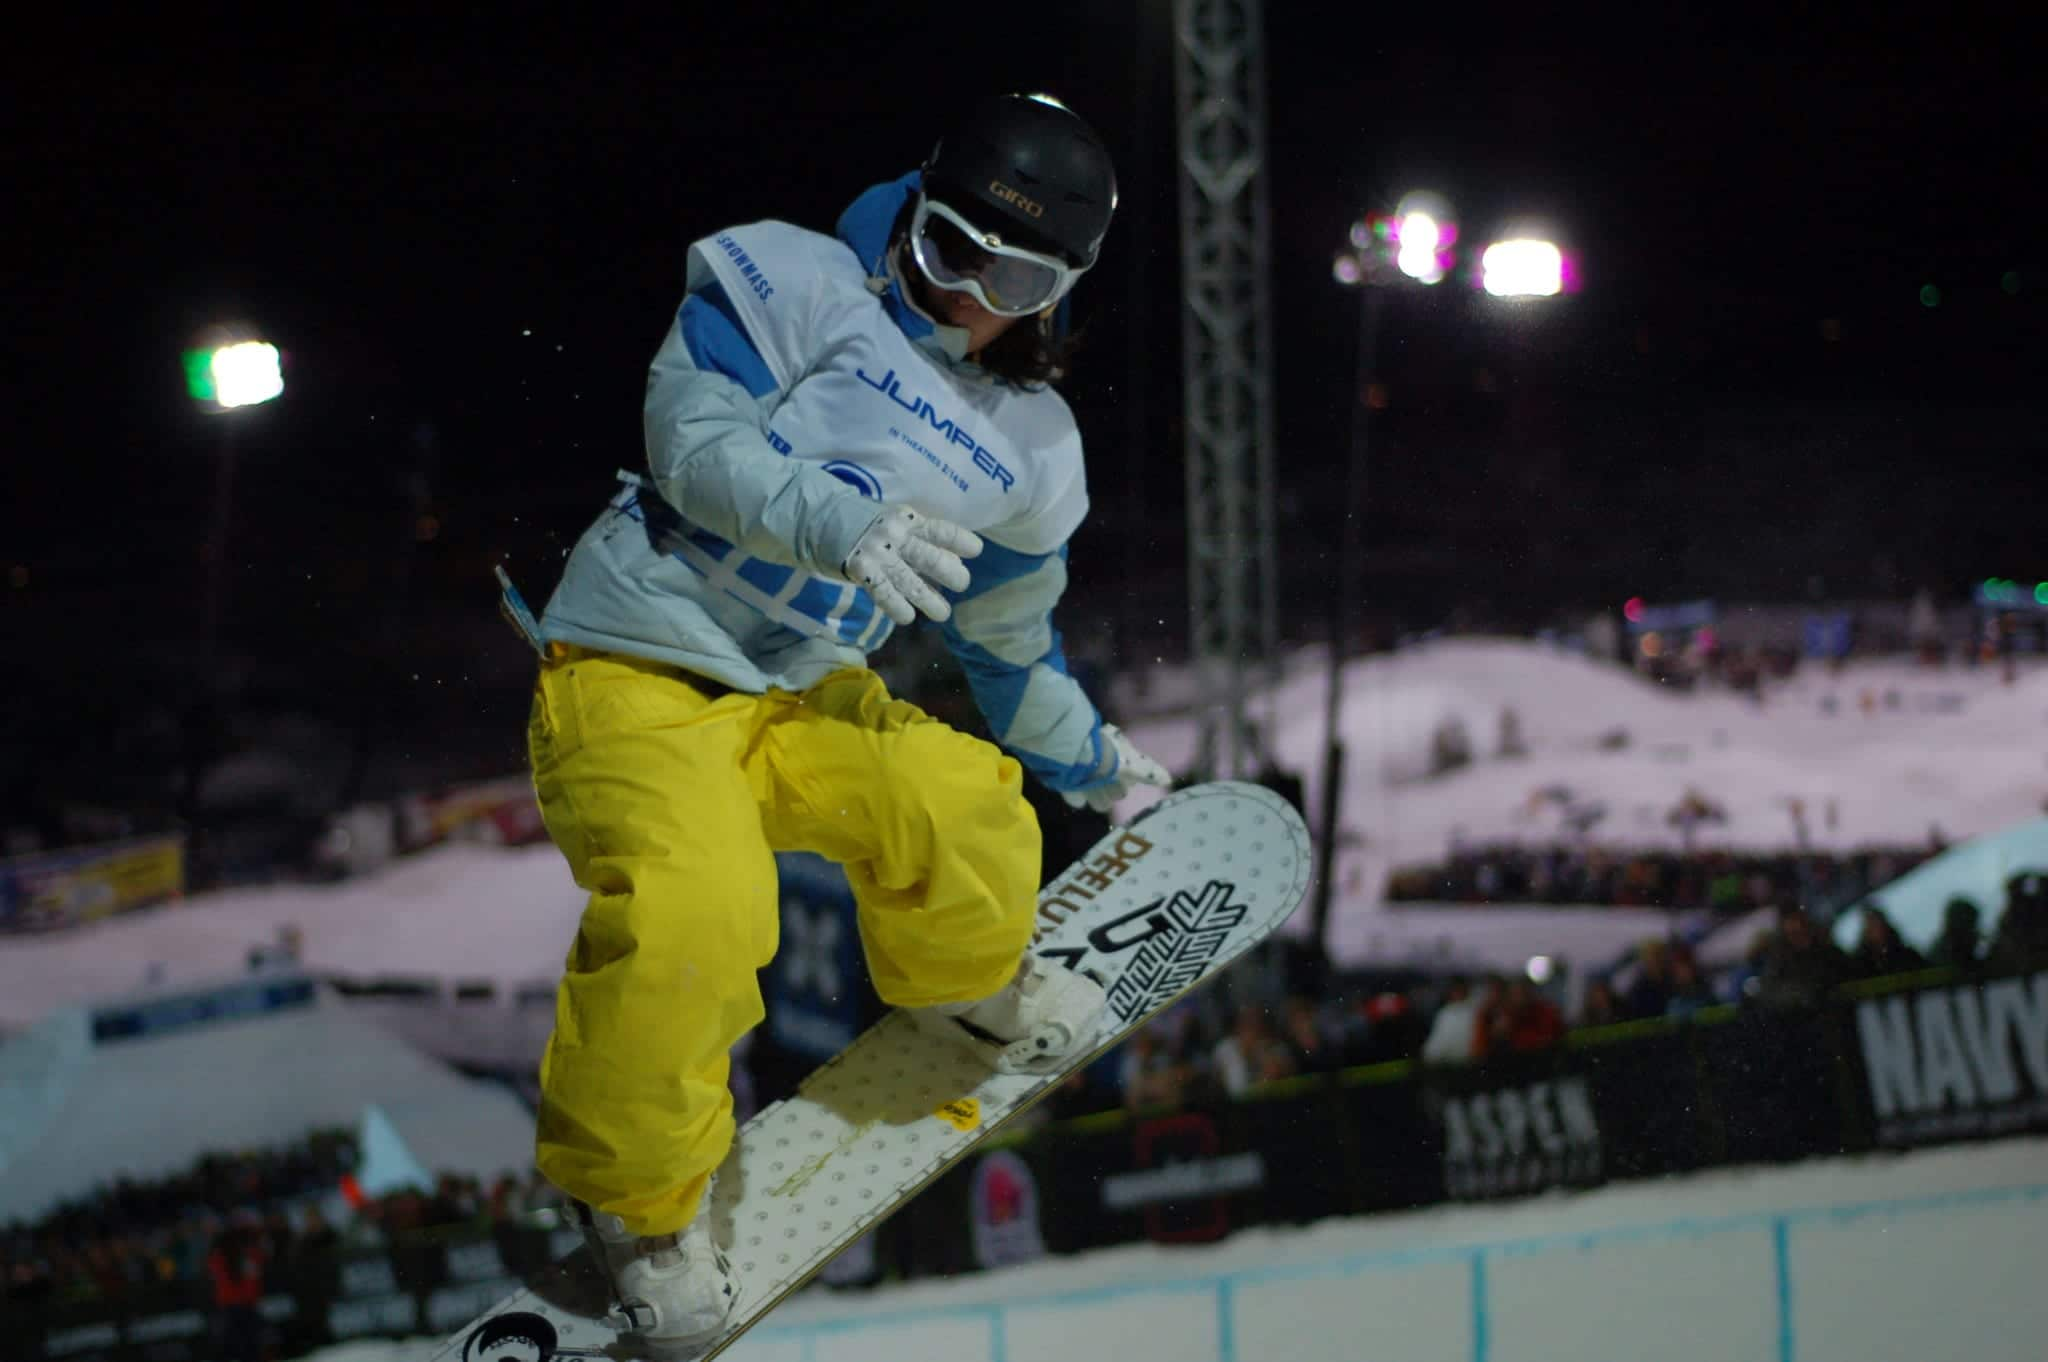 image of snowboarder